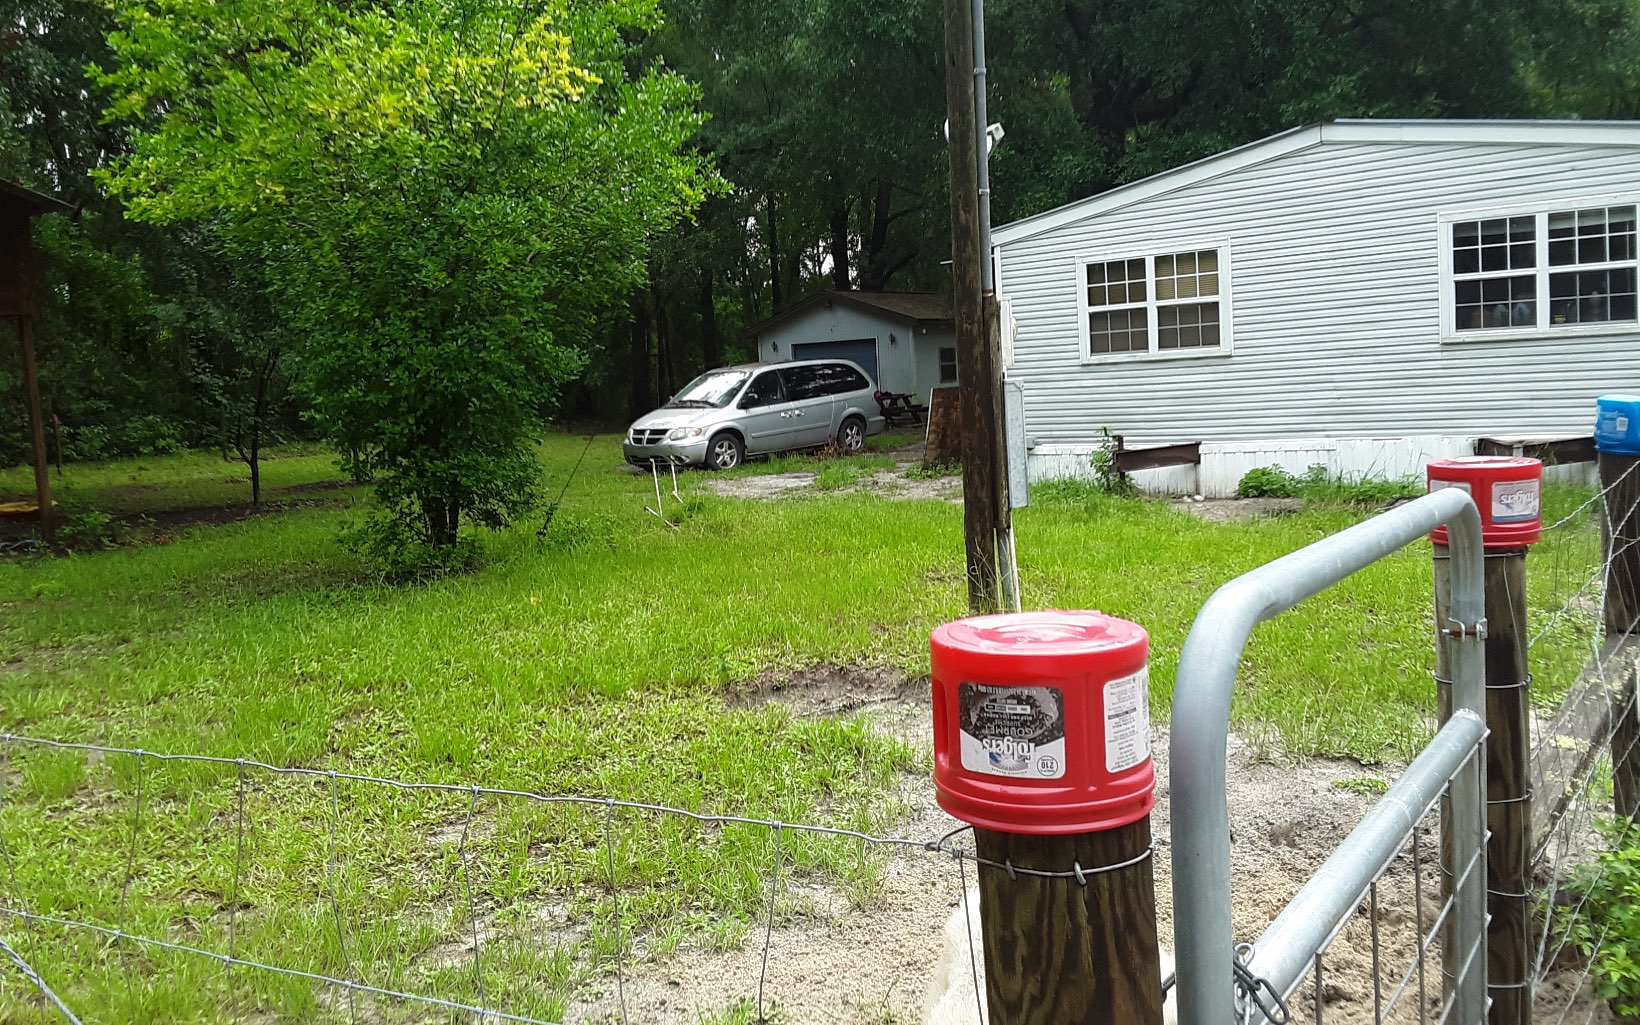 2 Wells 2 Septic Tanks, High Dry Land, Beautiful Trees on Lot and Good Roads, Great Rental Potential, Home has Porch on Front and Carport on Back. Can Purchase The Lot that has well, septic and power pole for $26,900